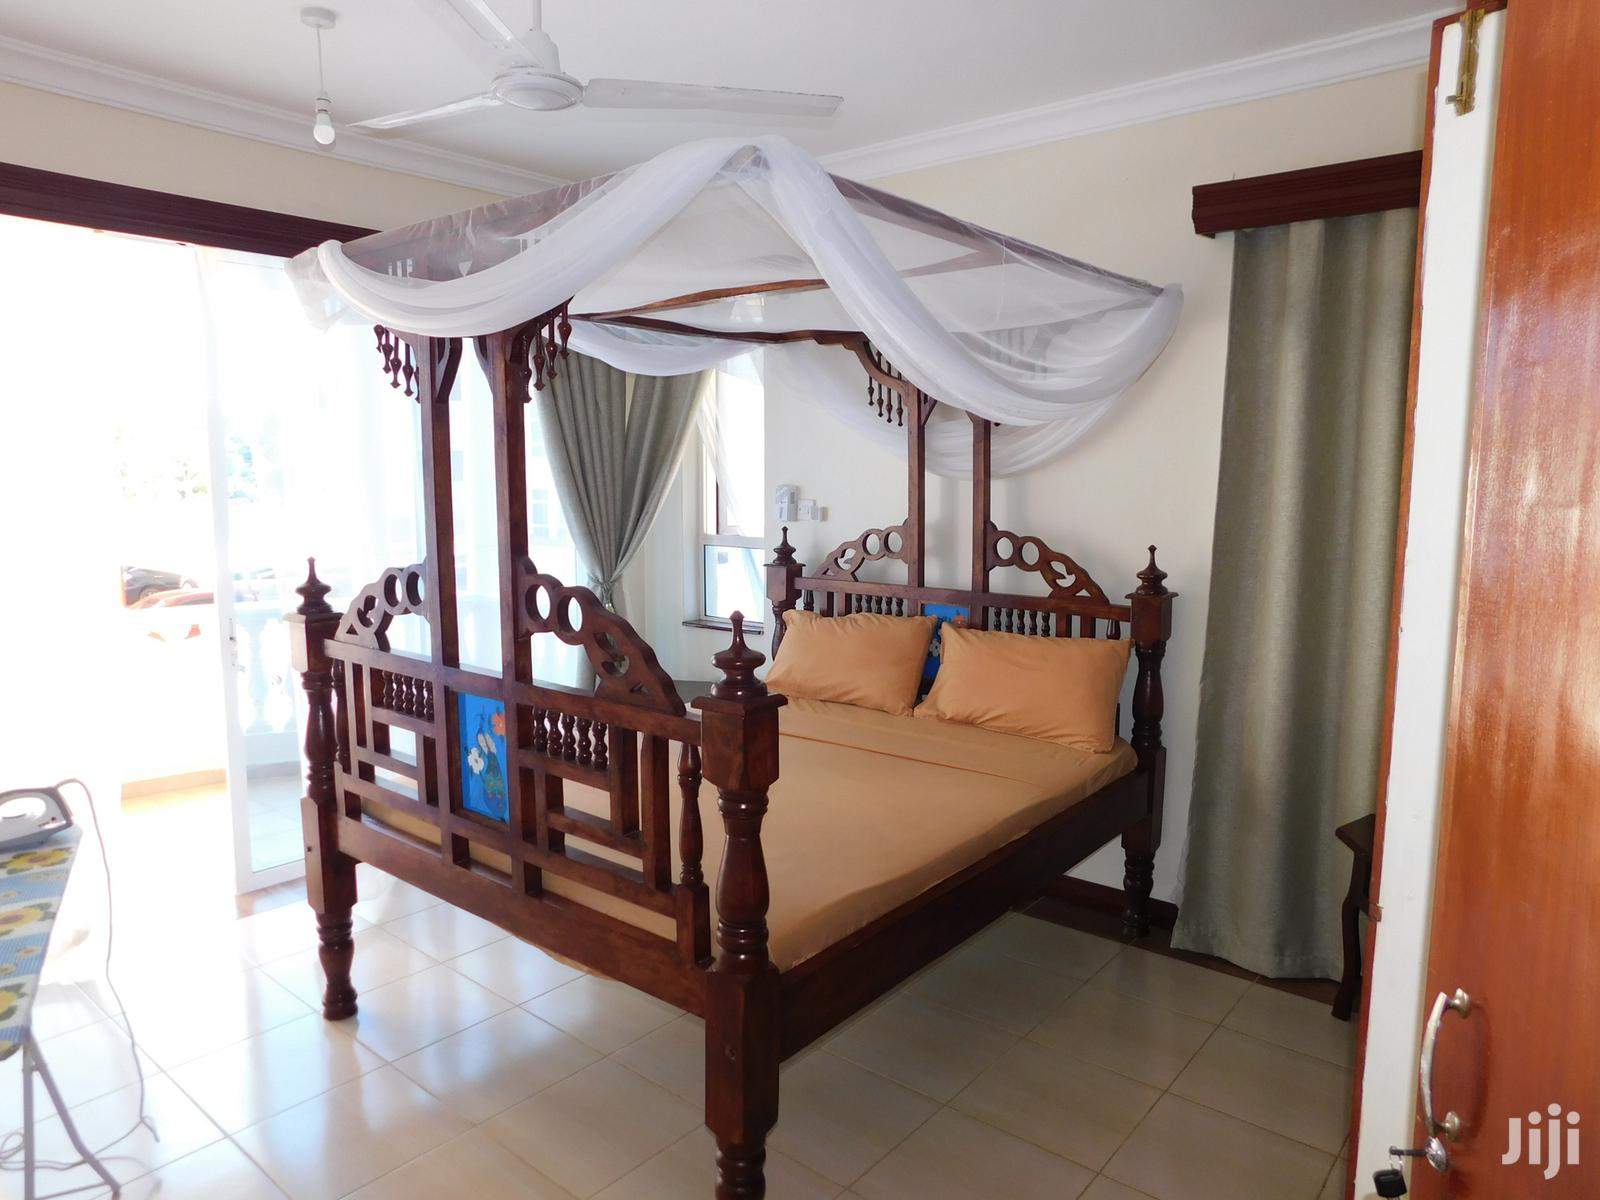 3 Bedroom Fully Furnished Holiday Apartment With Pool, Benford Homes